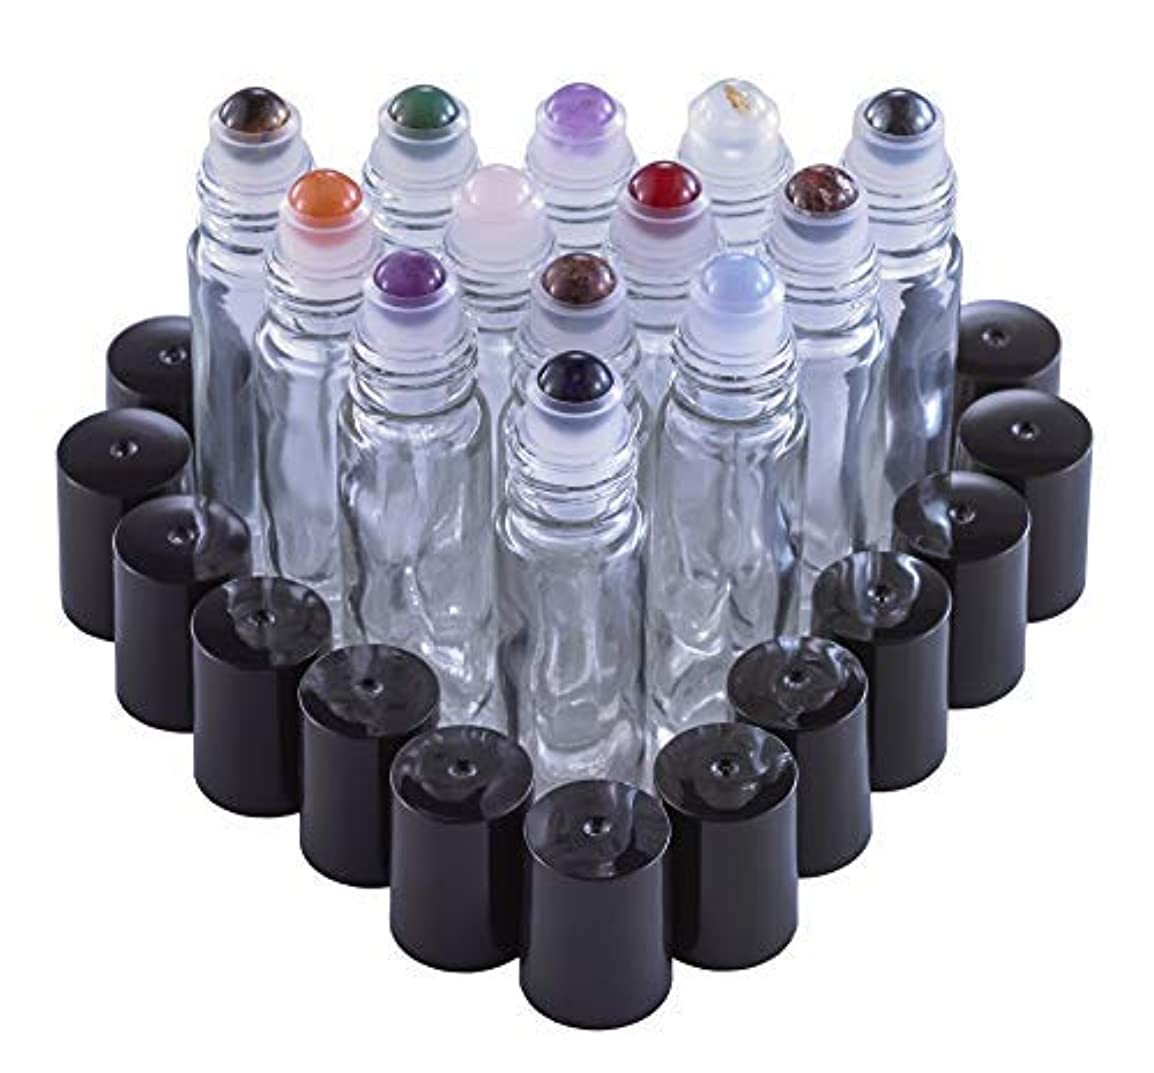 ハーブステープル無力Gemstone Roller Balls For Essential Oils - 13 Beautiful Glass Roller Bottles With Precious Gemstones and Crystals Tops - For Blending Including Tiger Eye, Rose Quartz, Amethyst [並行輸入品]